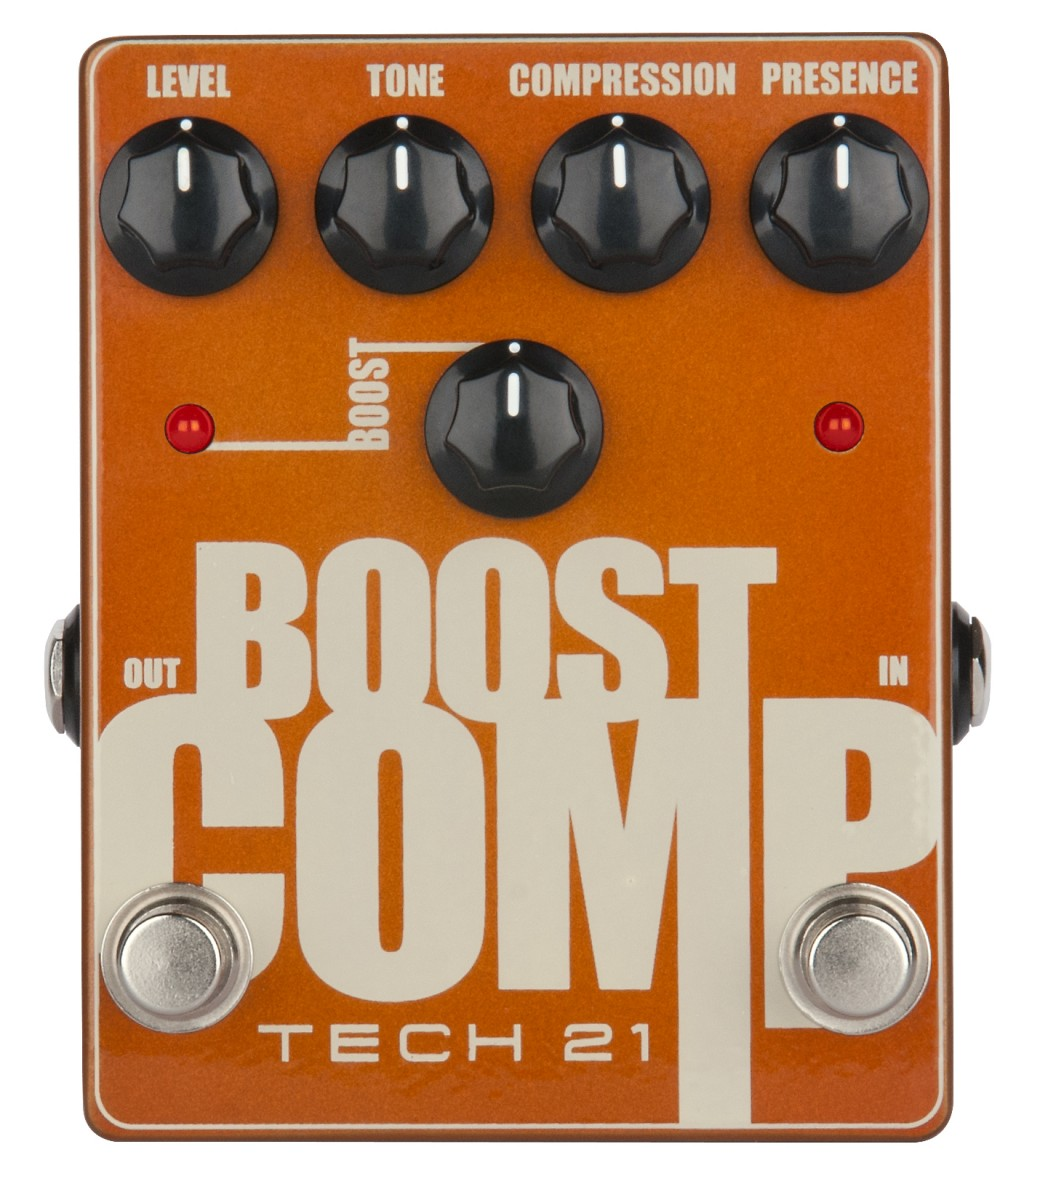 Tech21_Boost_COMP